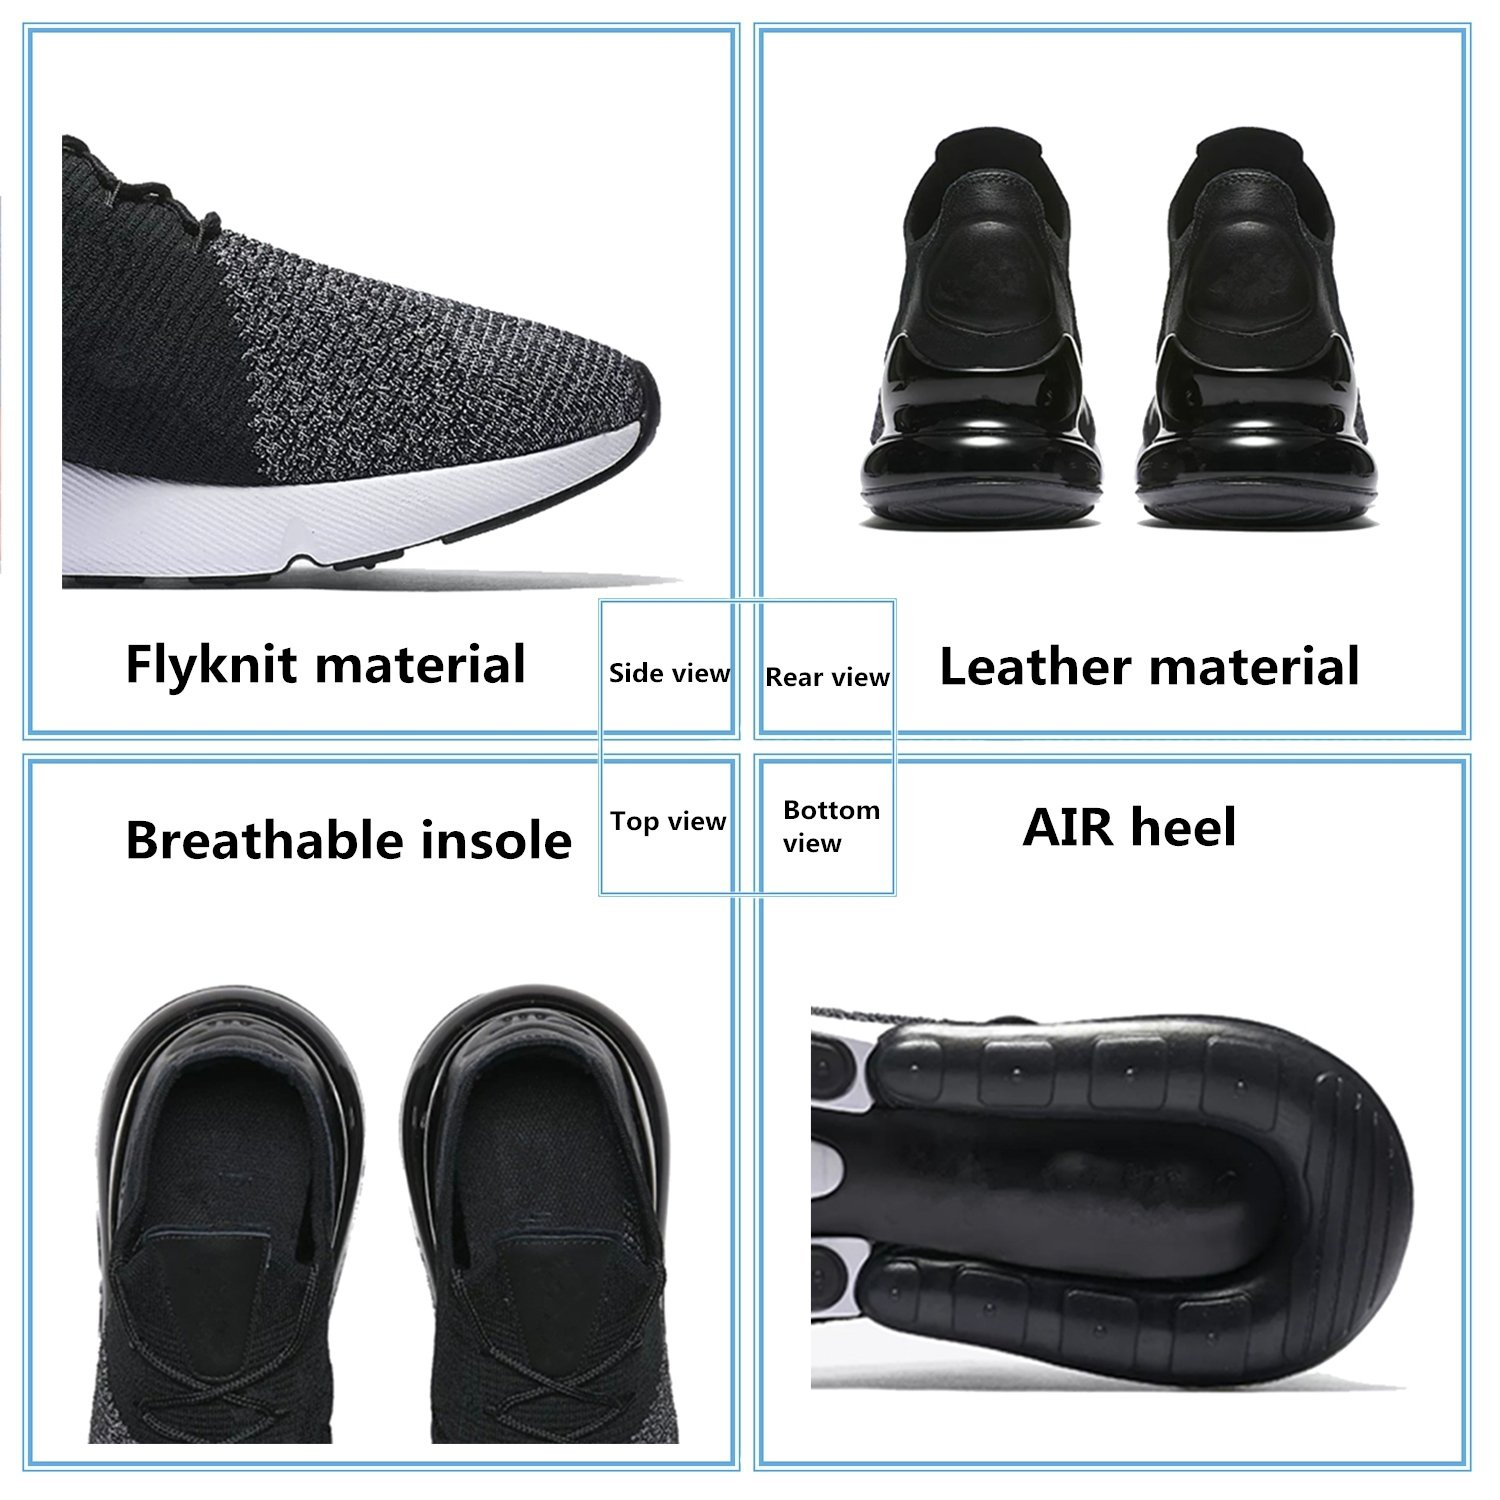 TENGFEI Air Shoes 270 Flyknit Men's Running Shoes Air Trainers Lace up Breathable Leisure Sneaker B07DG2CNQY 12.5 M US|Black 39ff79